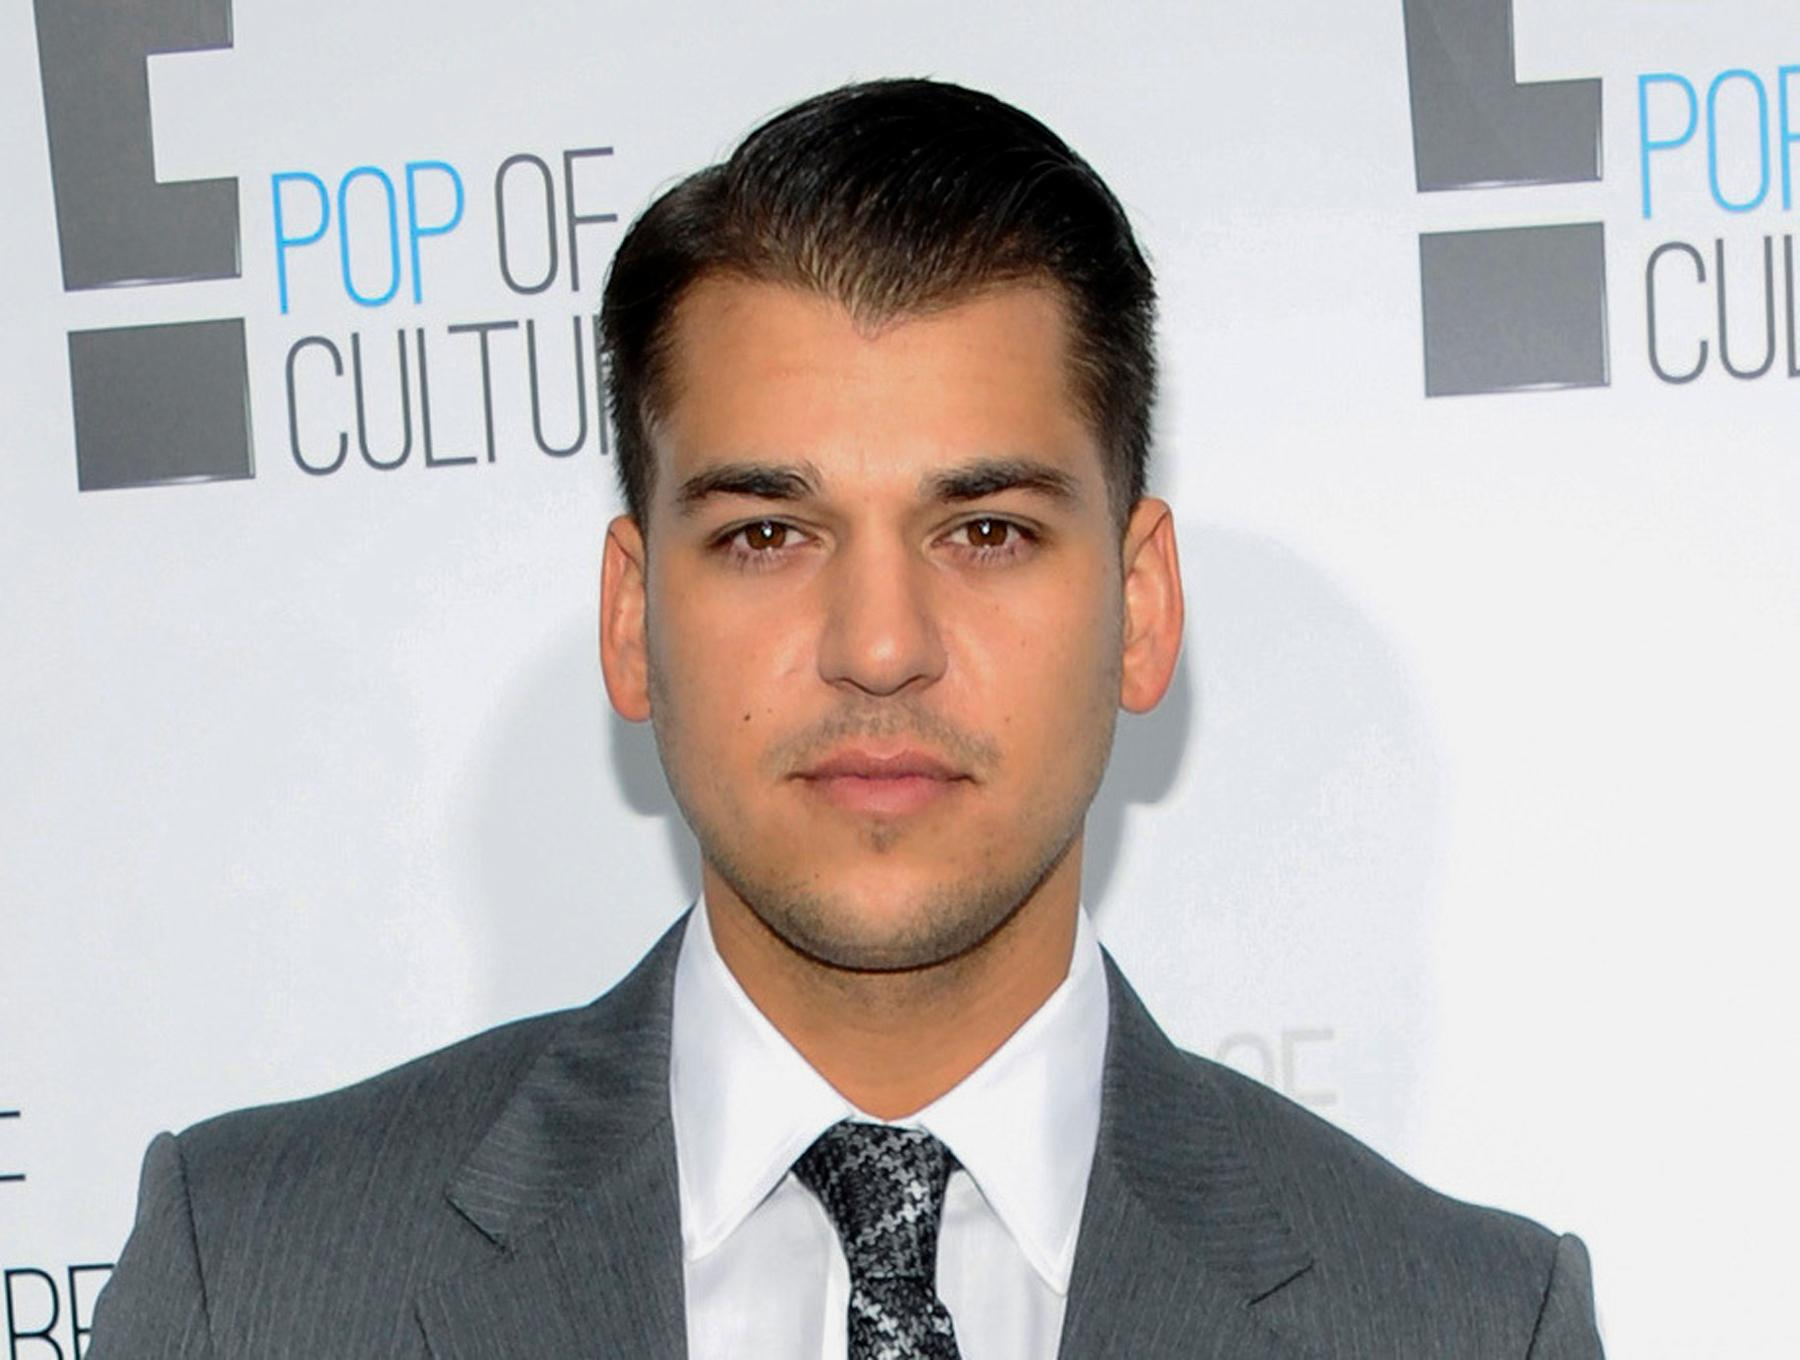 "FILE - In this April 30, 2012 file photo, Rob Kardashian from the show ""Keeping Up With The Kardashians"" attends an E! Network upfront event in New York. Kardashian said Instagram shut down his page on Wednesday, July 5, 2017, following his flurry of posts attacking his former fiancee Blac Chyna. (AP Photo/Evan Agostini, File)"